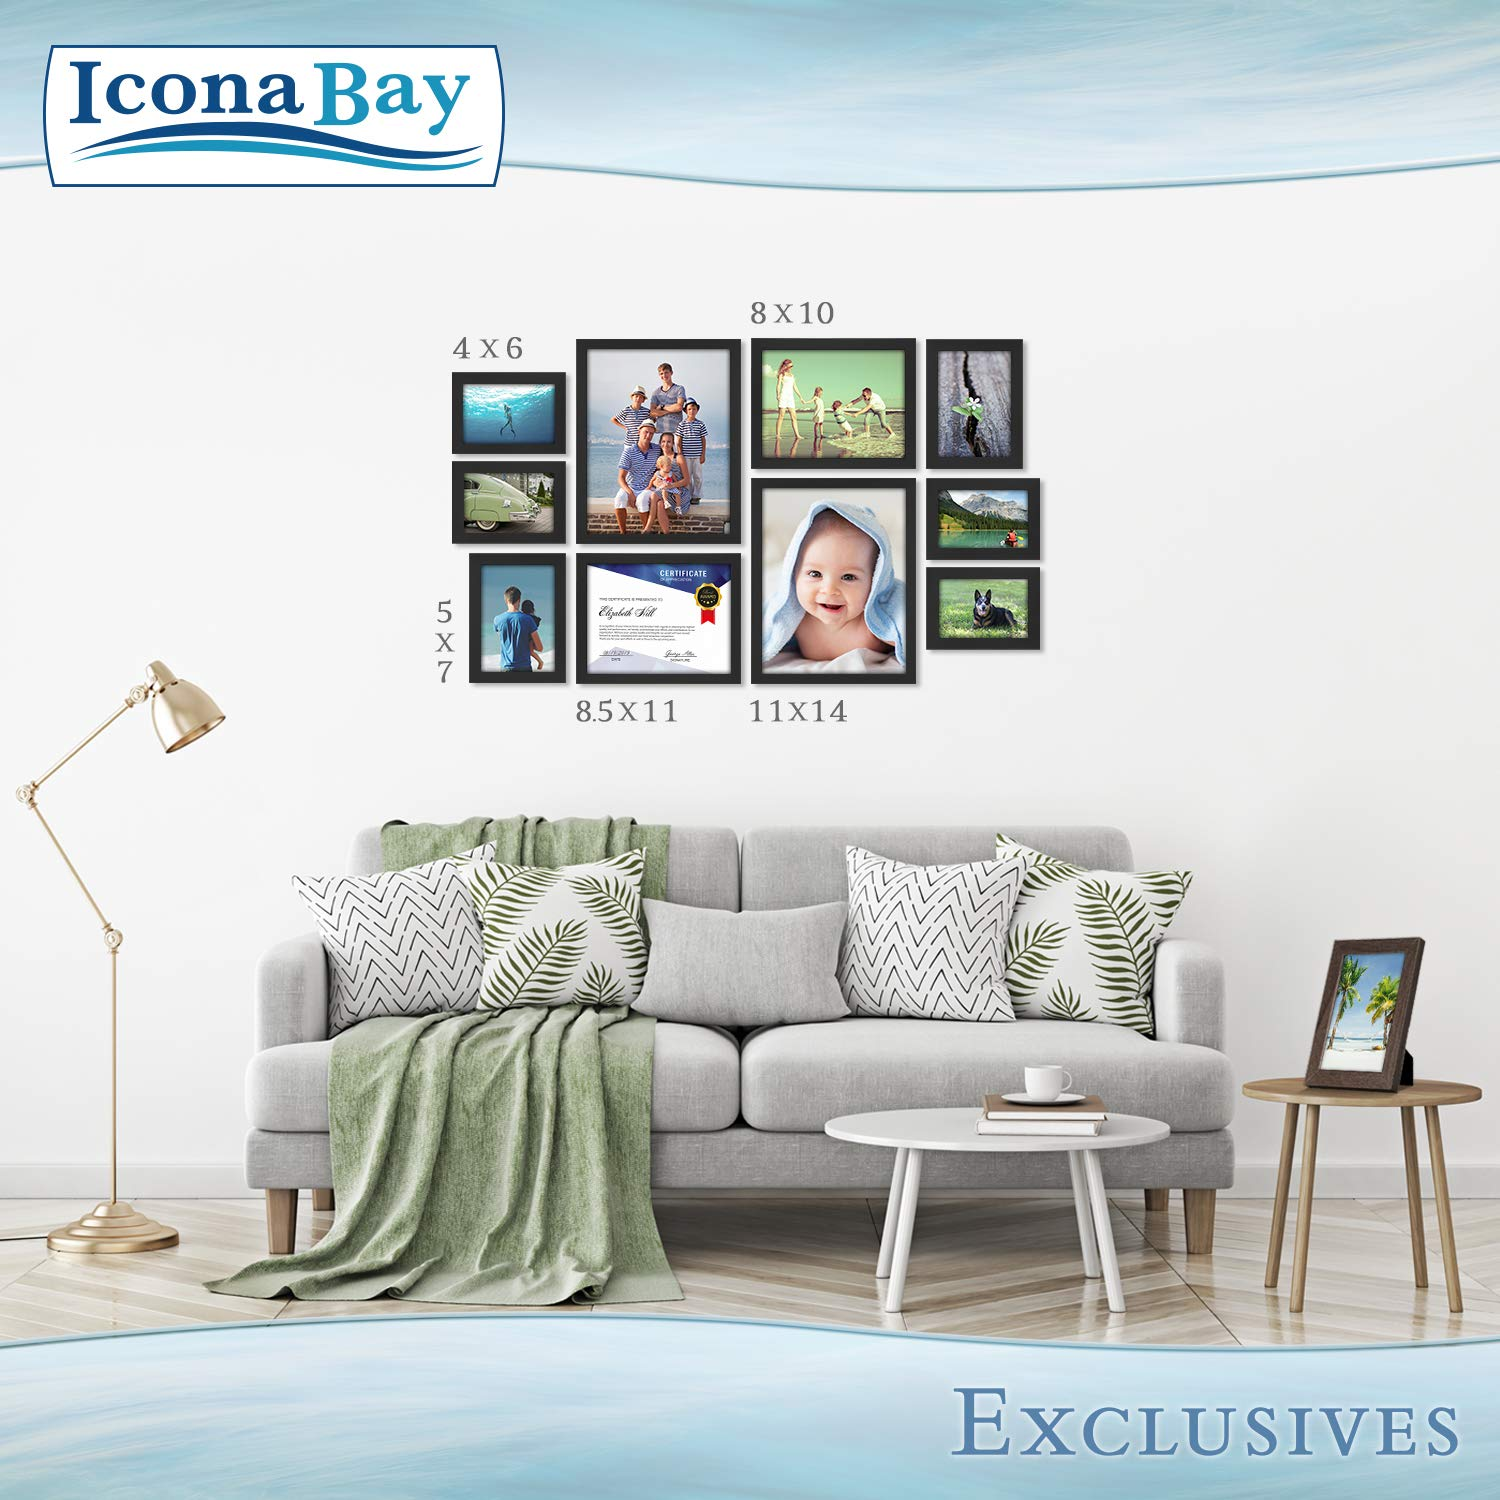 Icona Bay 8.5x11 Diploma Frame (12 Pack, Black), Black Sturdy Wood Composite Certificate Frame, Document Frame Bulk, Wall or Table Mount, Set of 12 Exclusives Collection by Icona Bay (Image #6)